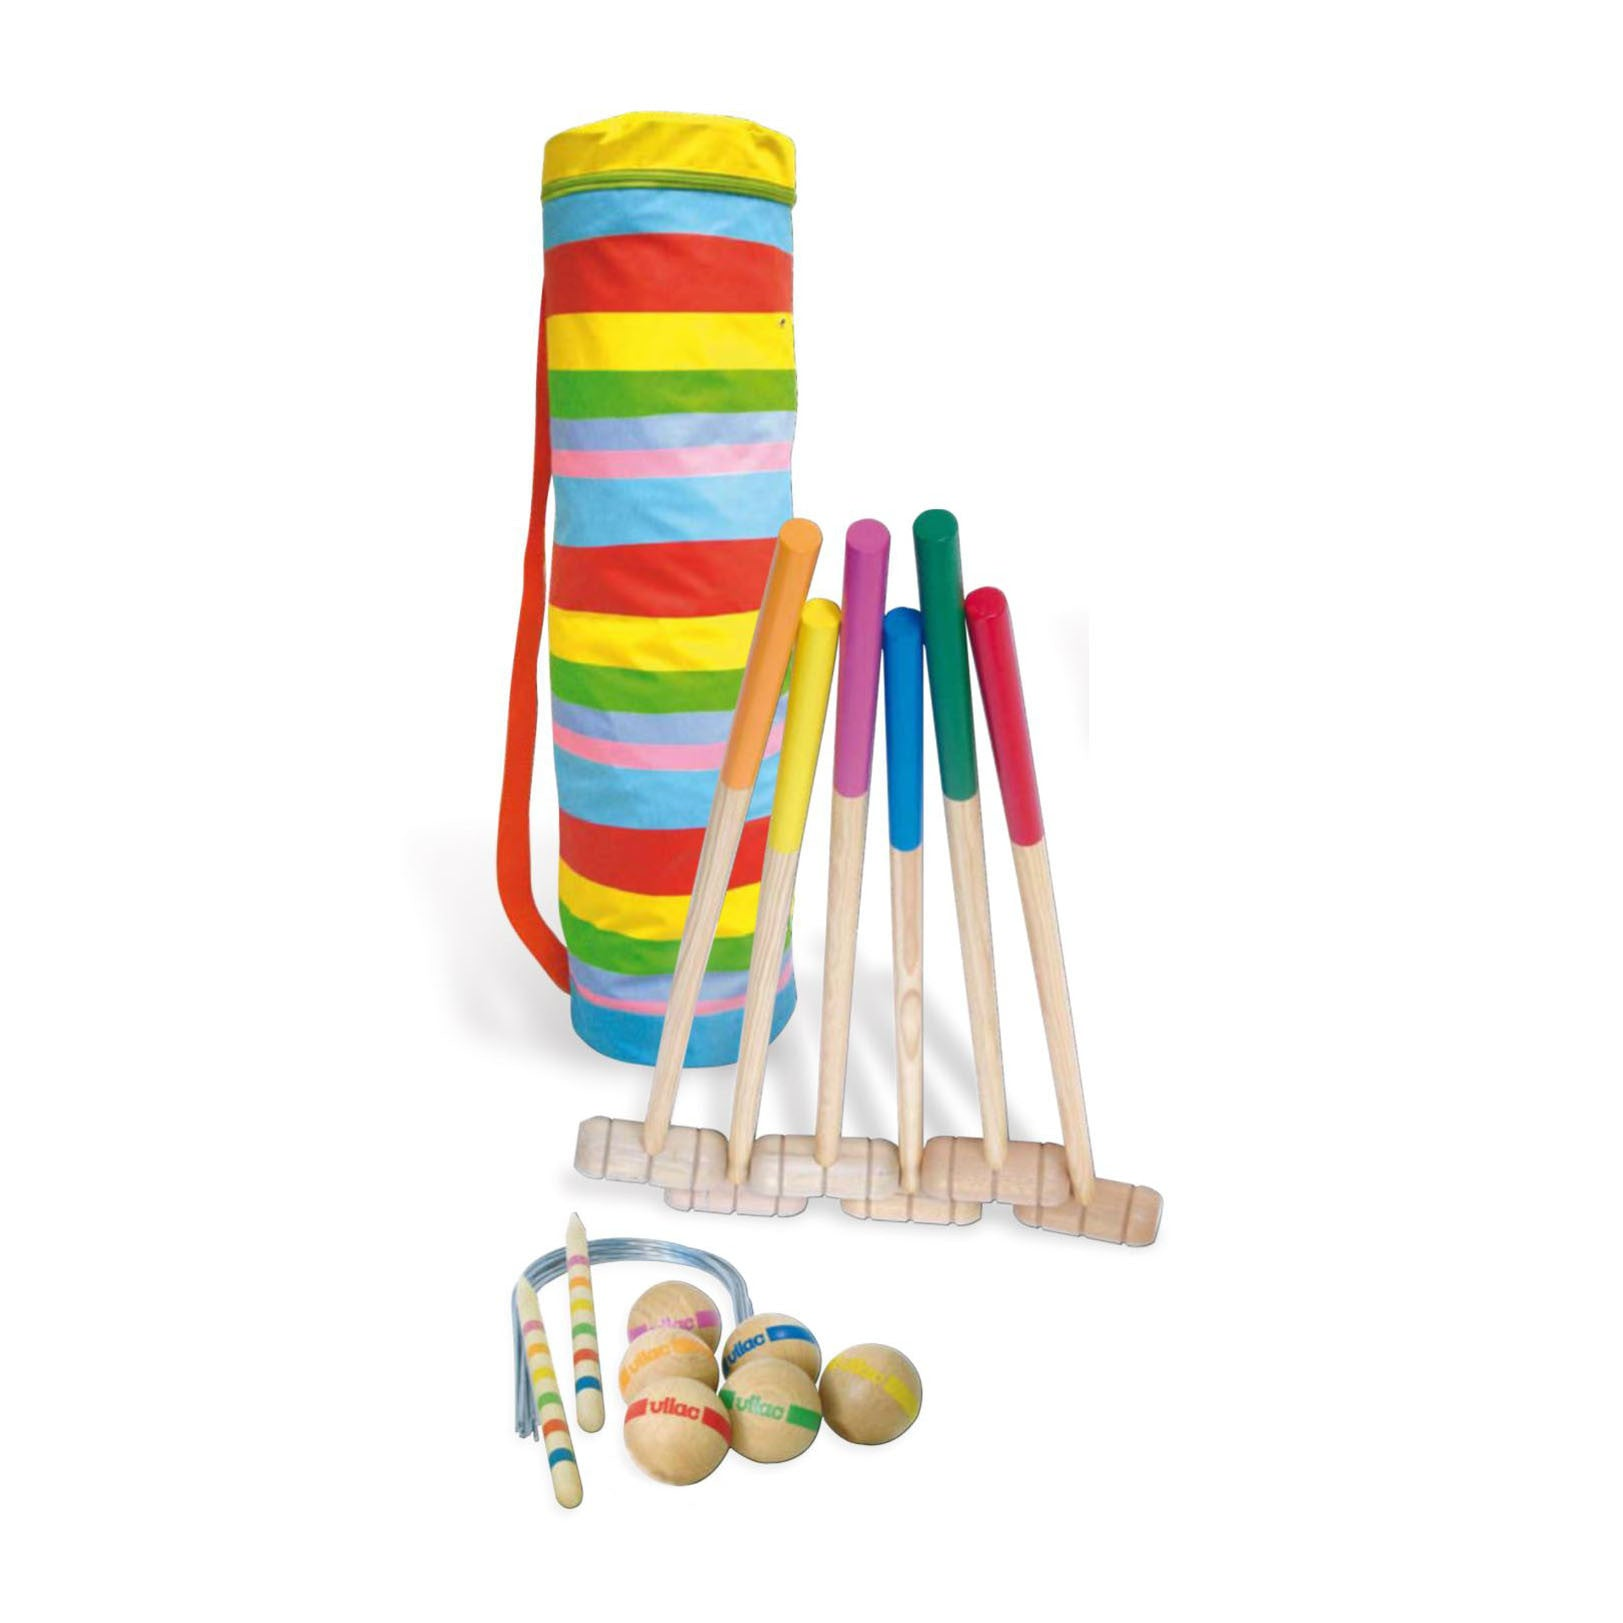 Garden Wooden Croquet Set by Vilac - Little Citizens Boutique  - 1